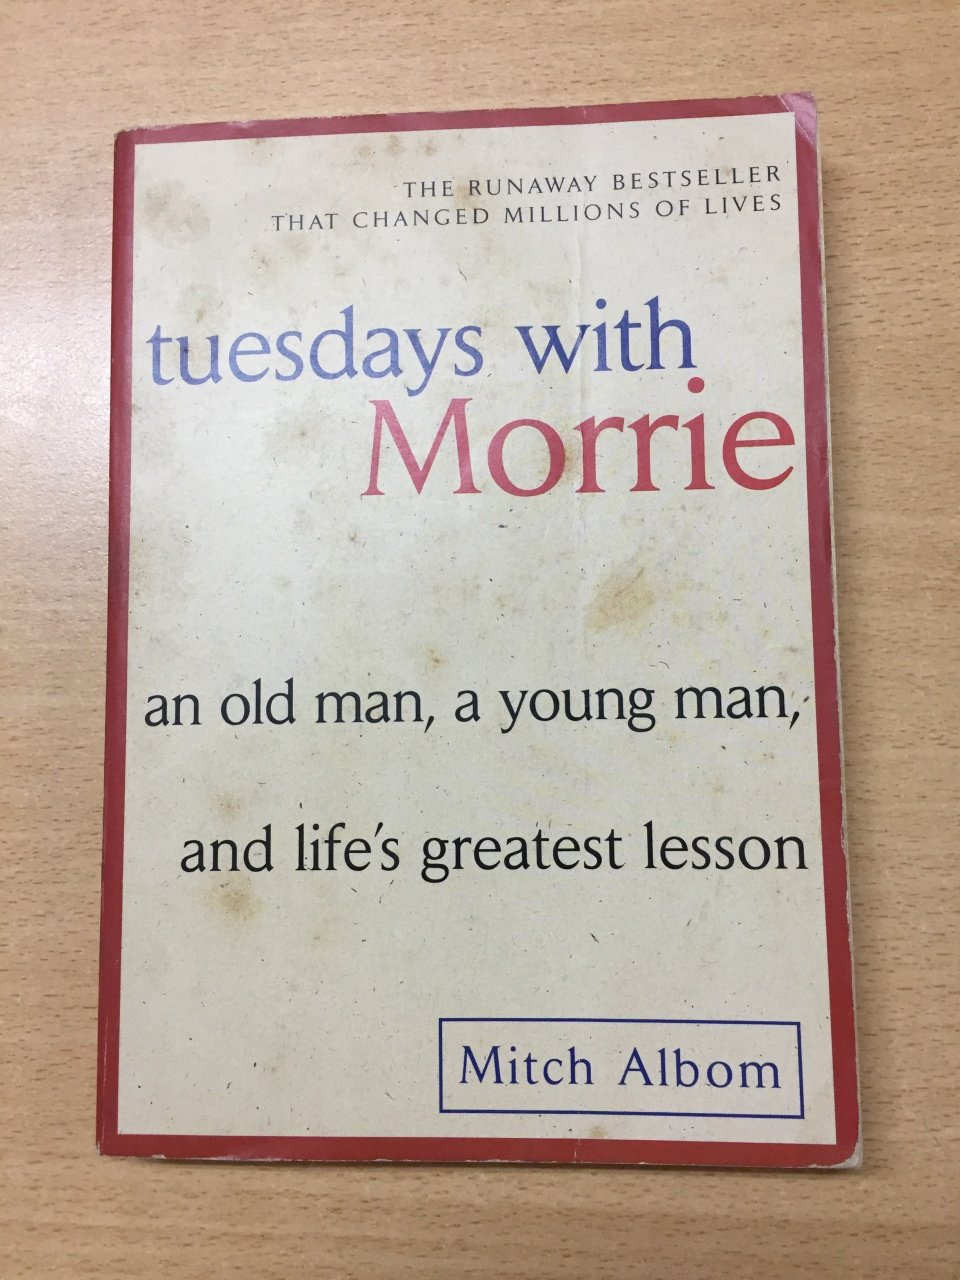 """tuesdays with morrie an analysis Tuesdays with morrie critical analysis essay in an effort to share the """"last class"""" he had with his college sociology professor, mitch album wrote, """"tuesdays with morrie"""" this moving account of the life lessons that morrie taught him is a beautiful tribute to a man whose compassion and love for humanity made him a favorite among those."""